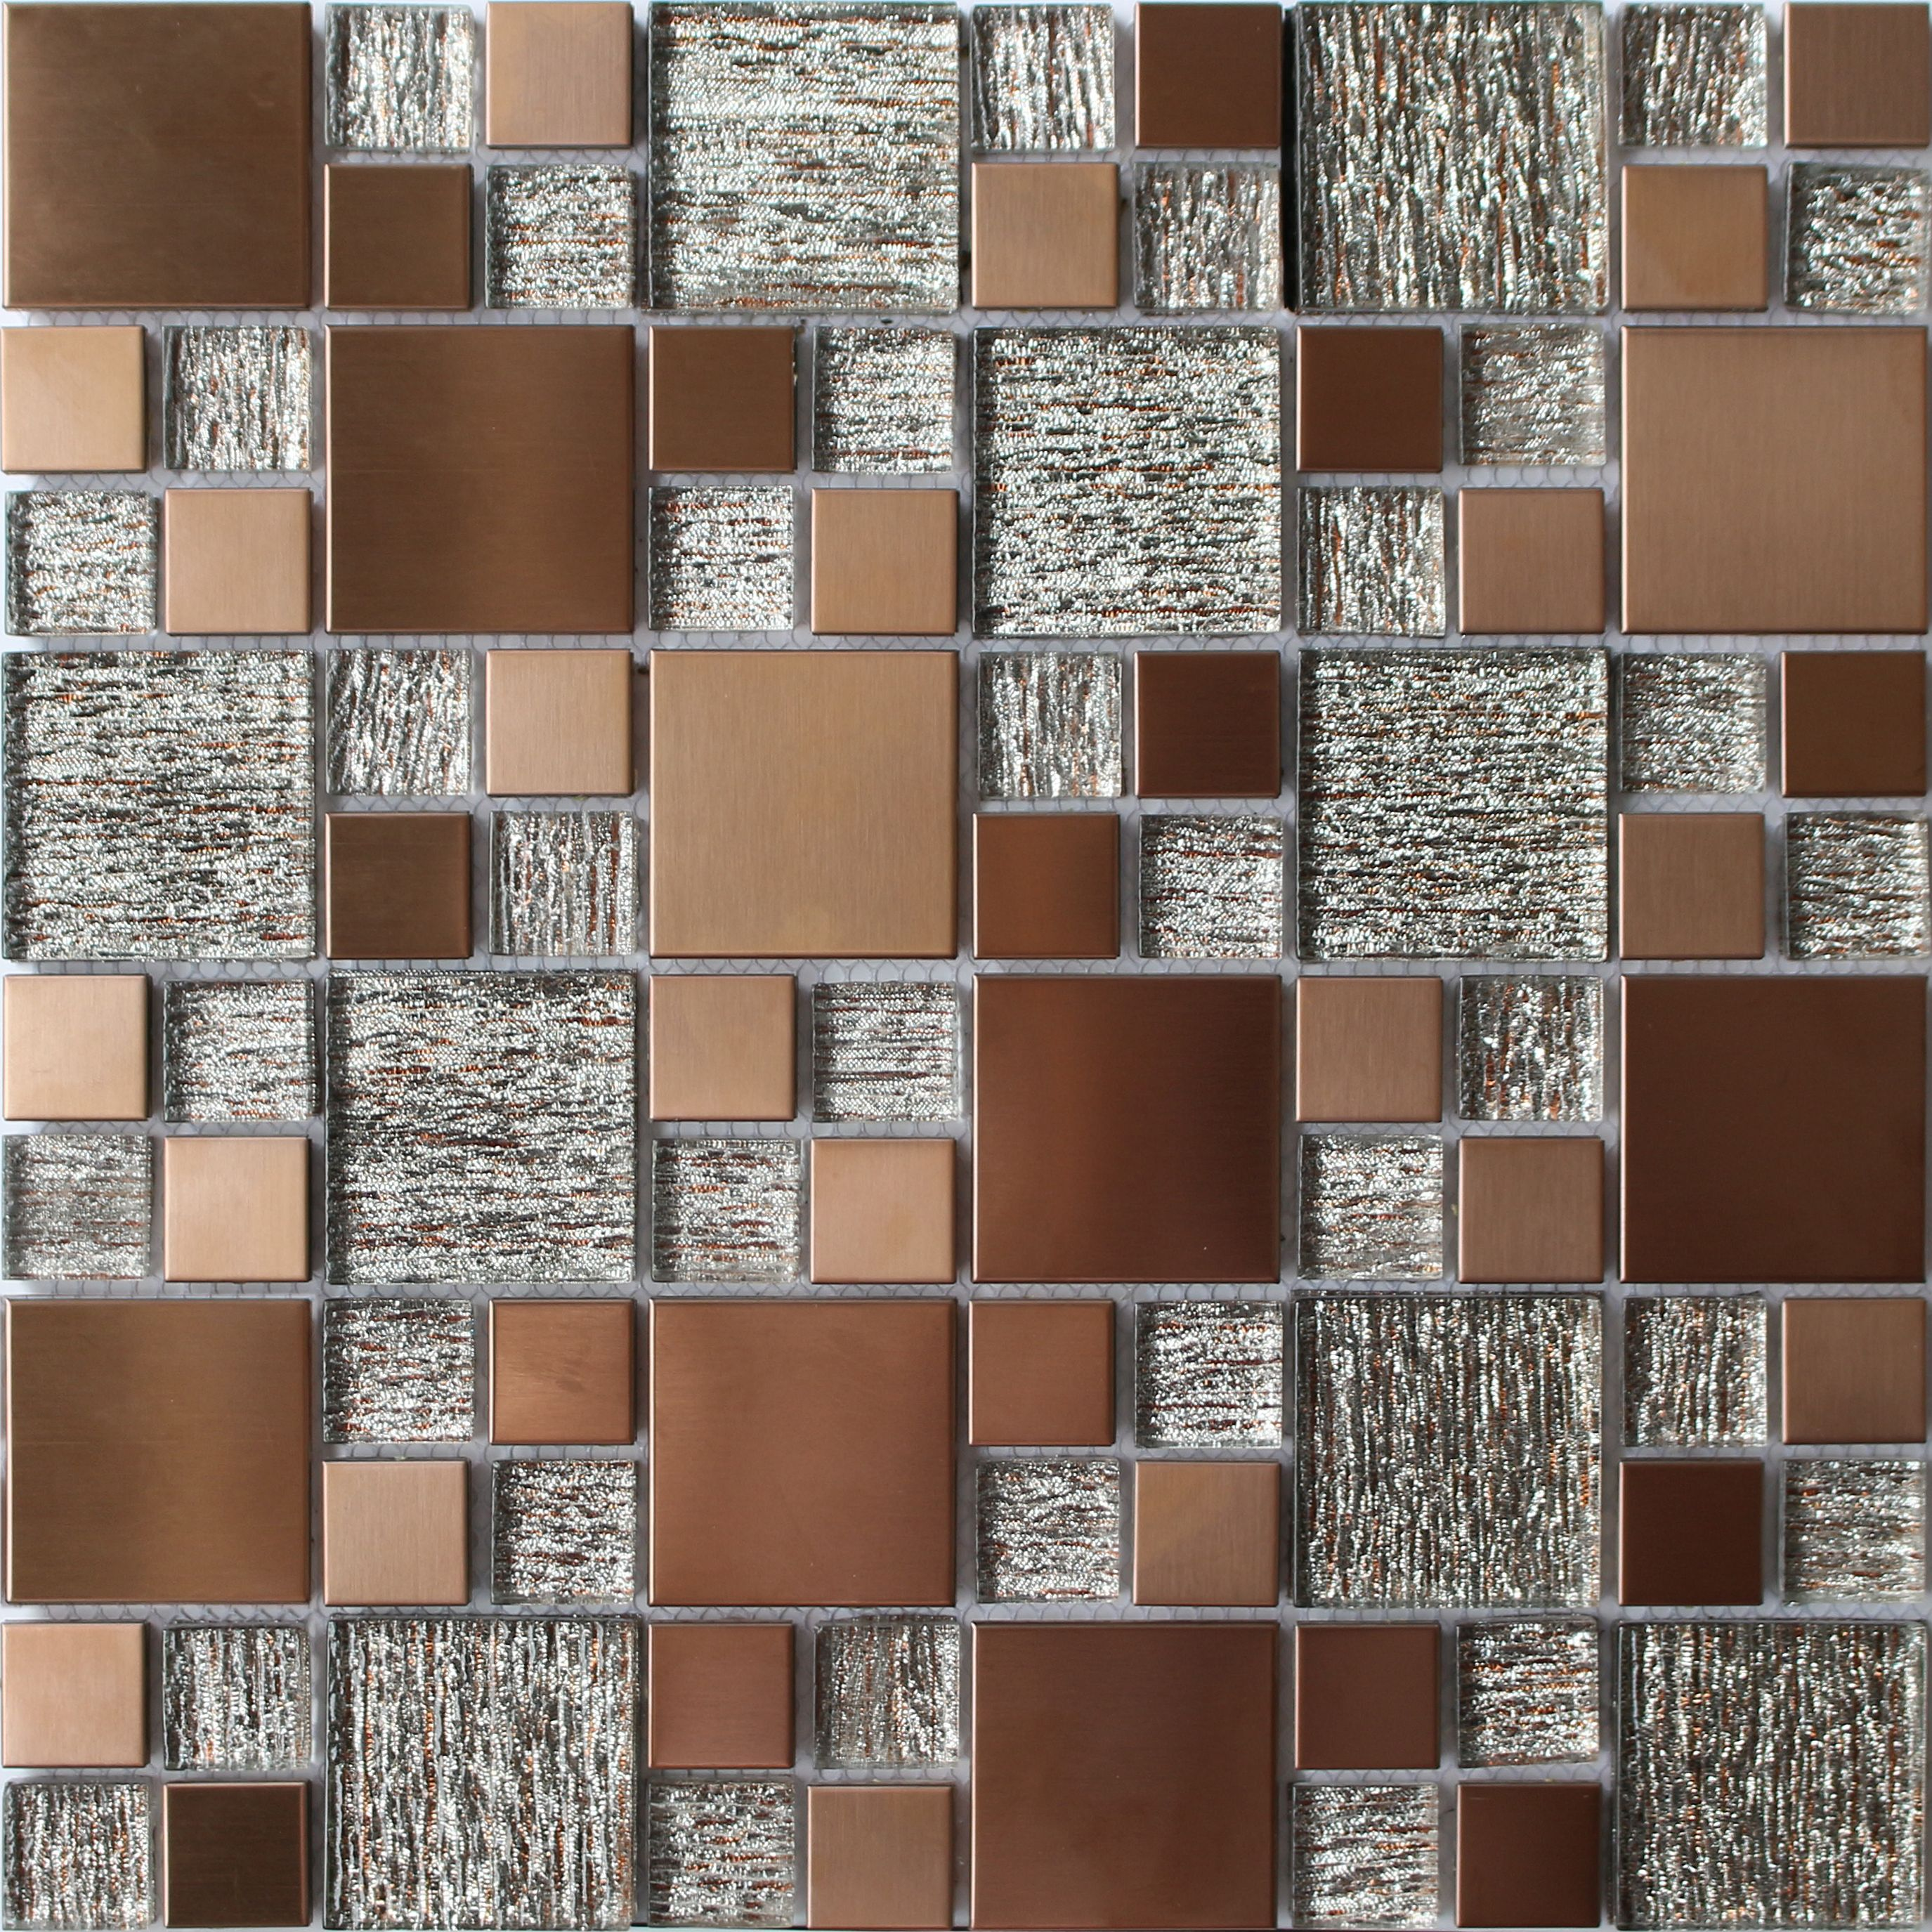 Green Glass Marble Mosaic Tile L 300mm W 300mm: Discontinued Floor Tiles From B Q